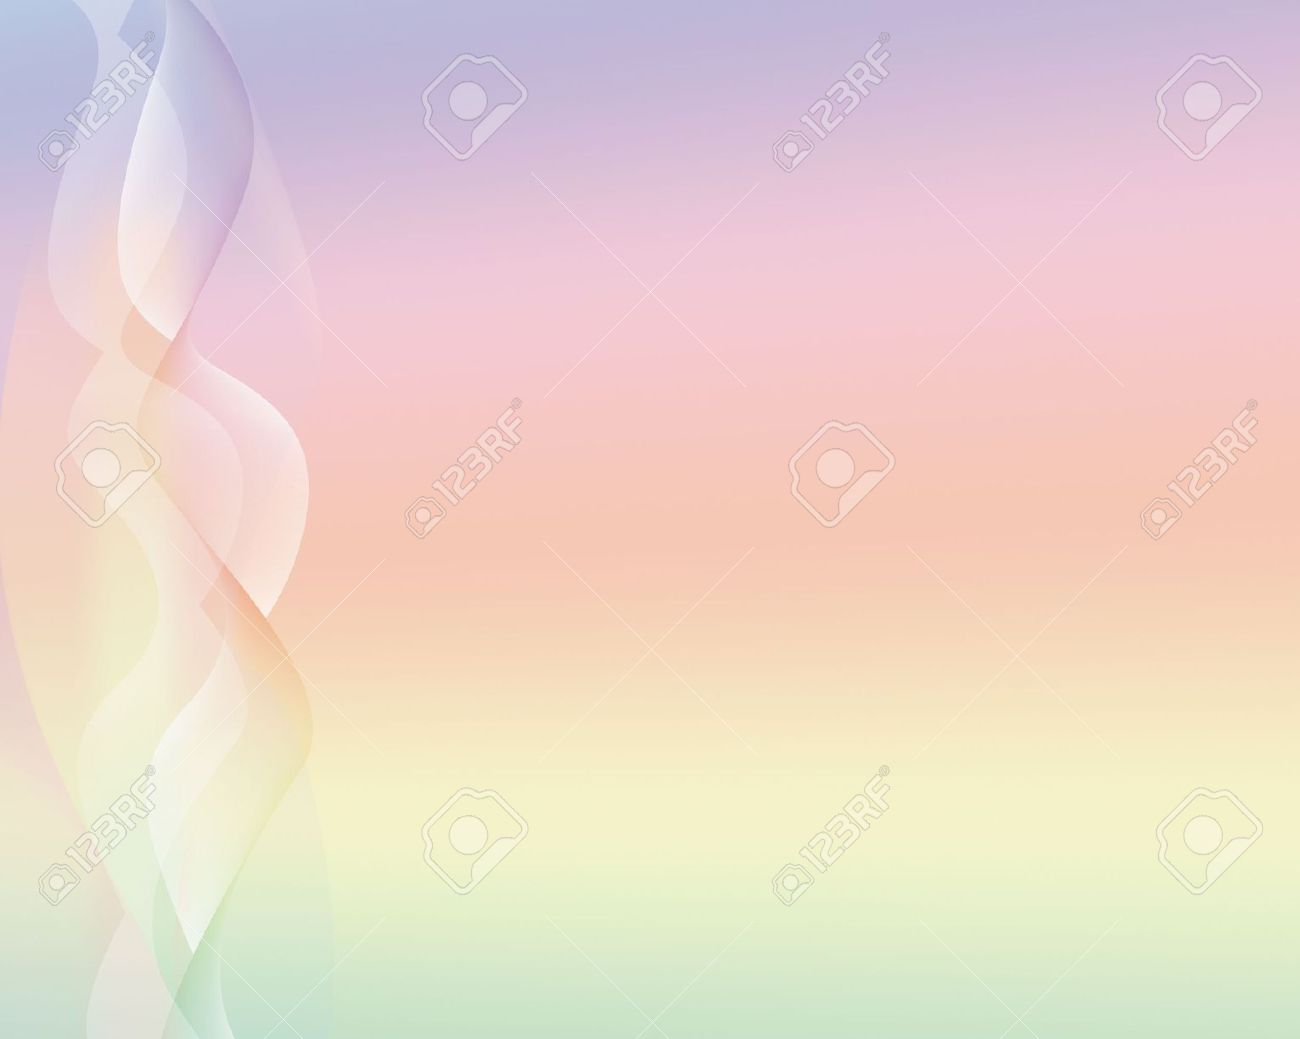 Vectors With Beautiful Pastels, Great Background Stock Photo ...